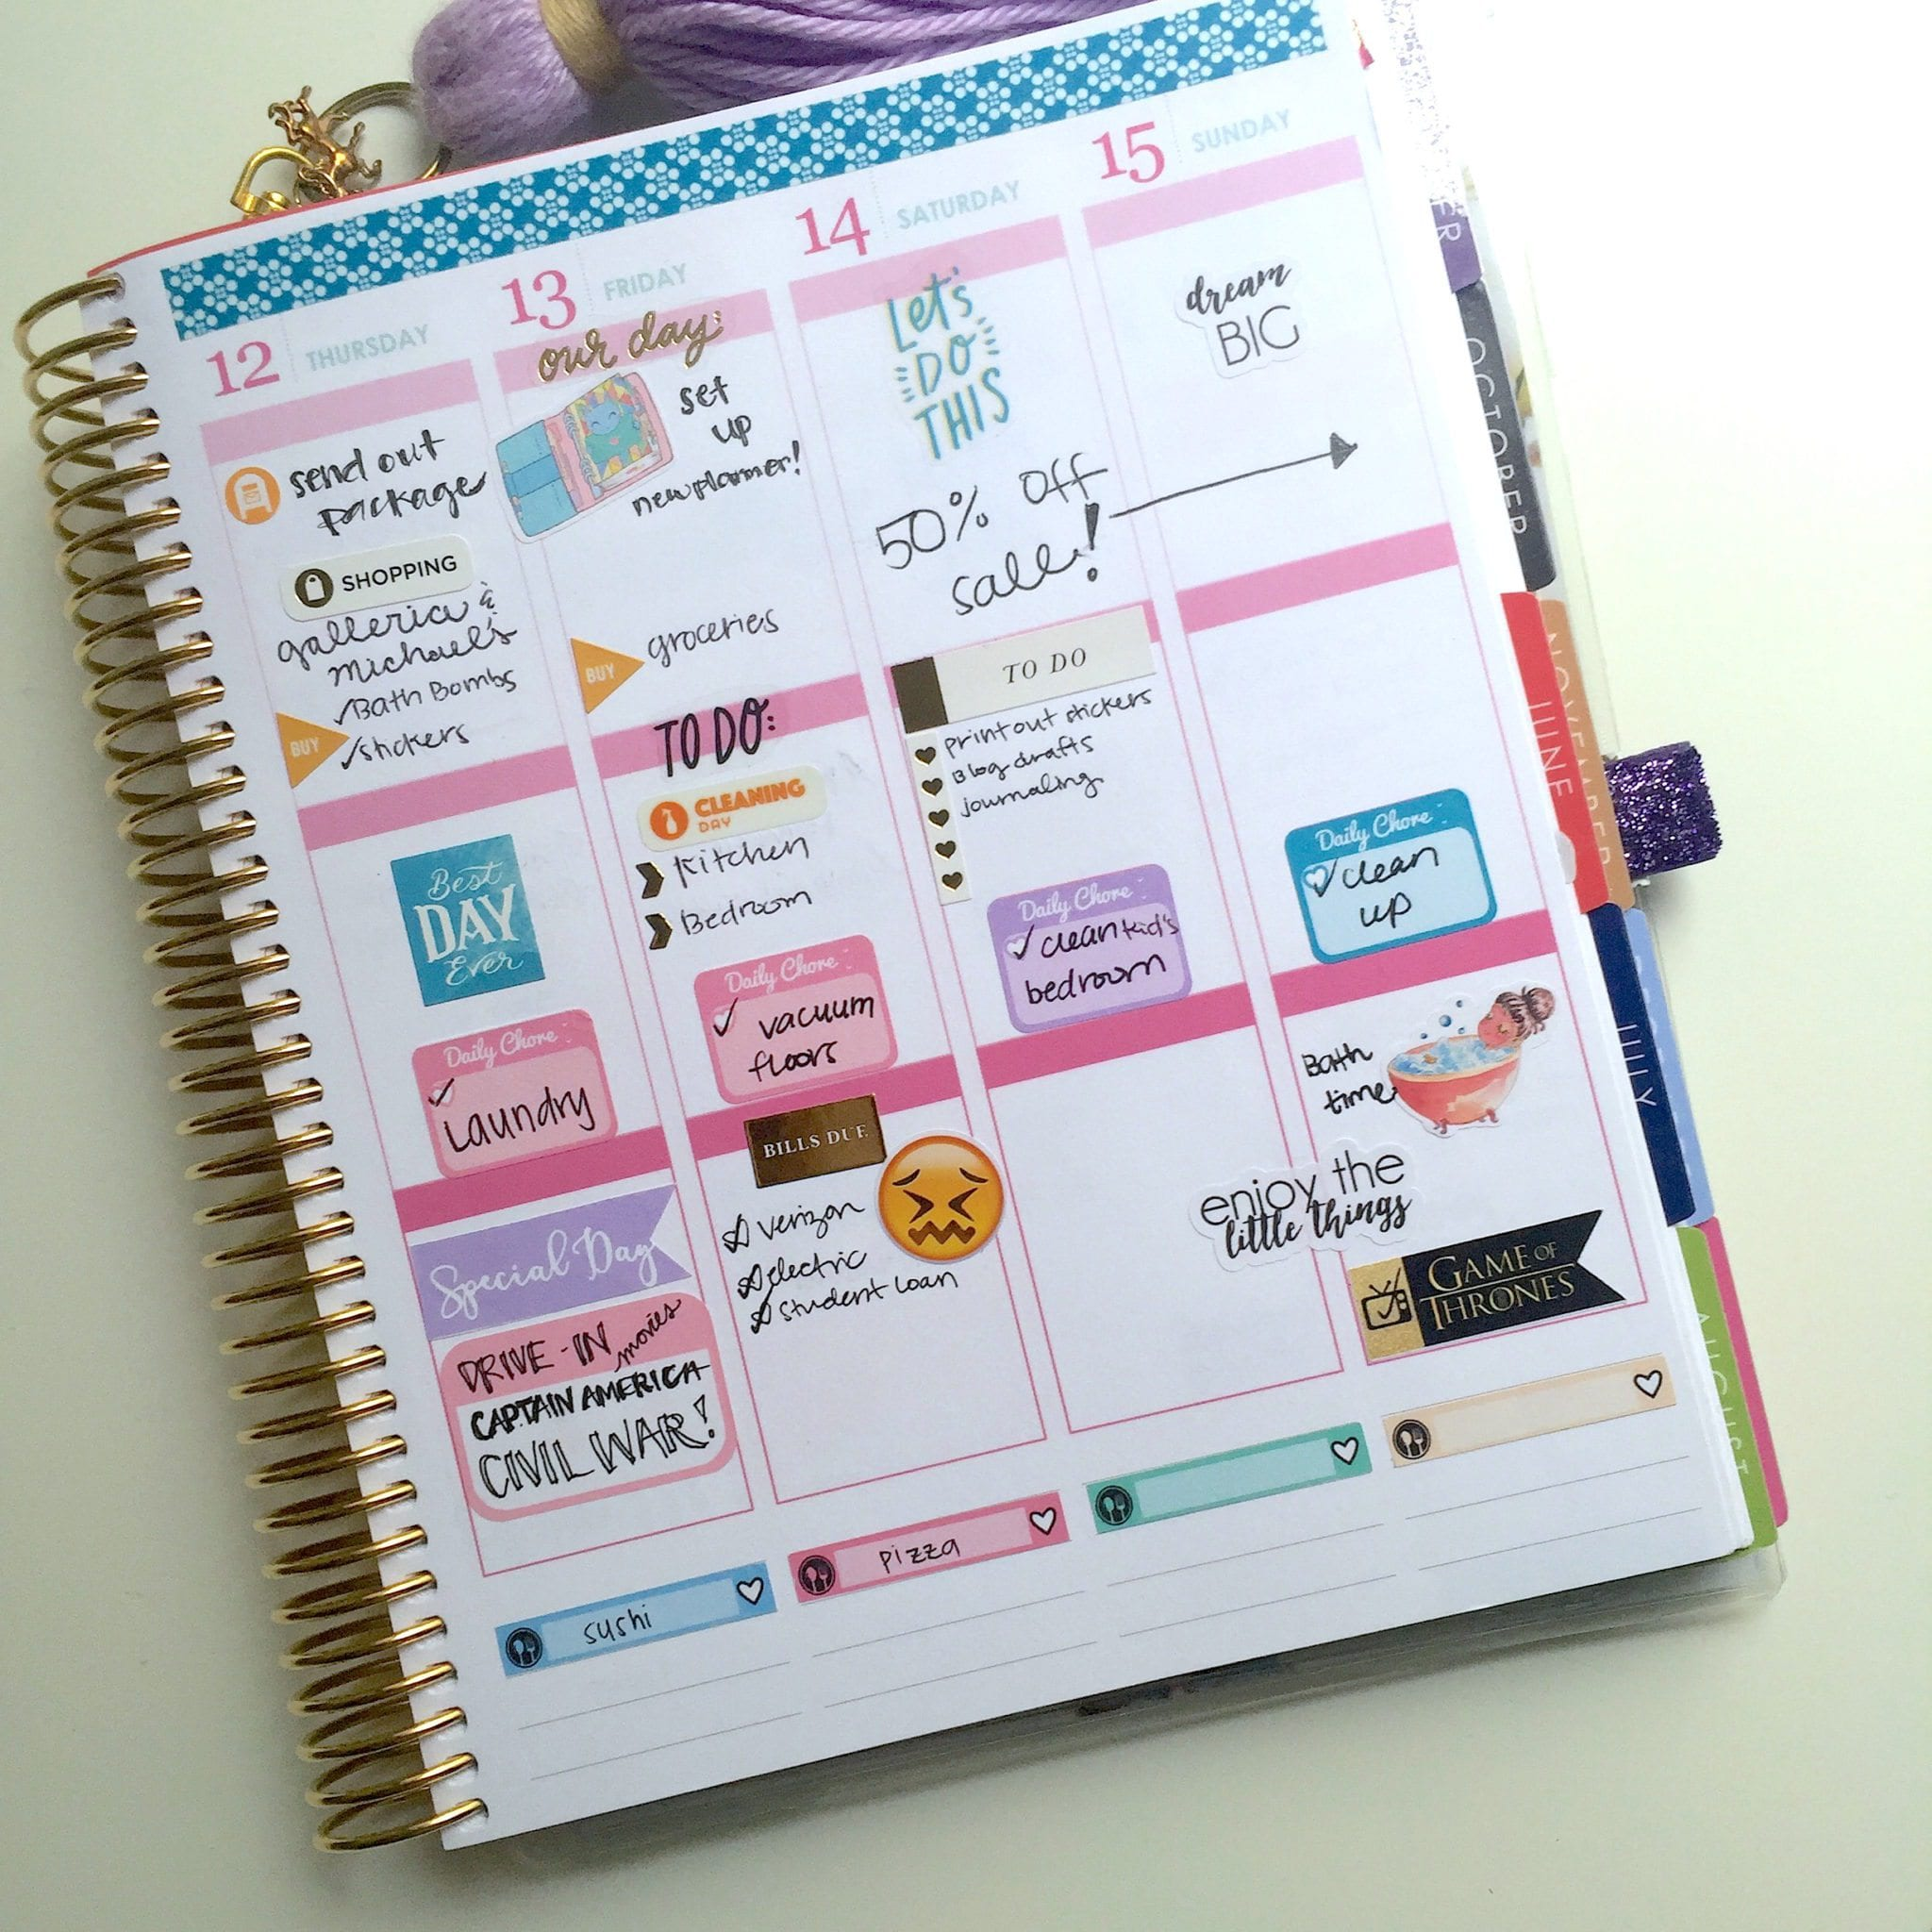 Free daily stickers avery 5428 template wendaful for Make your own planner online